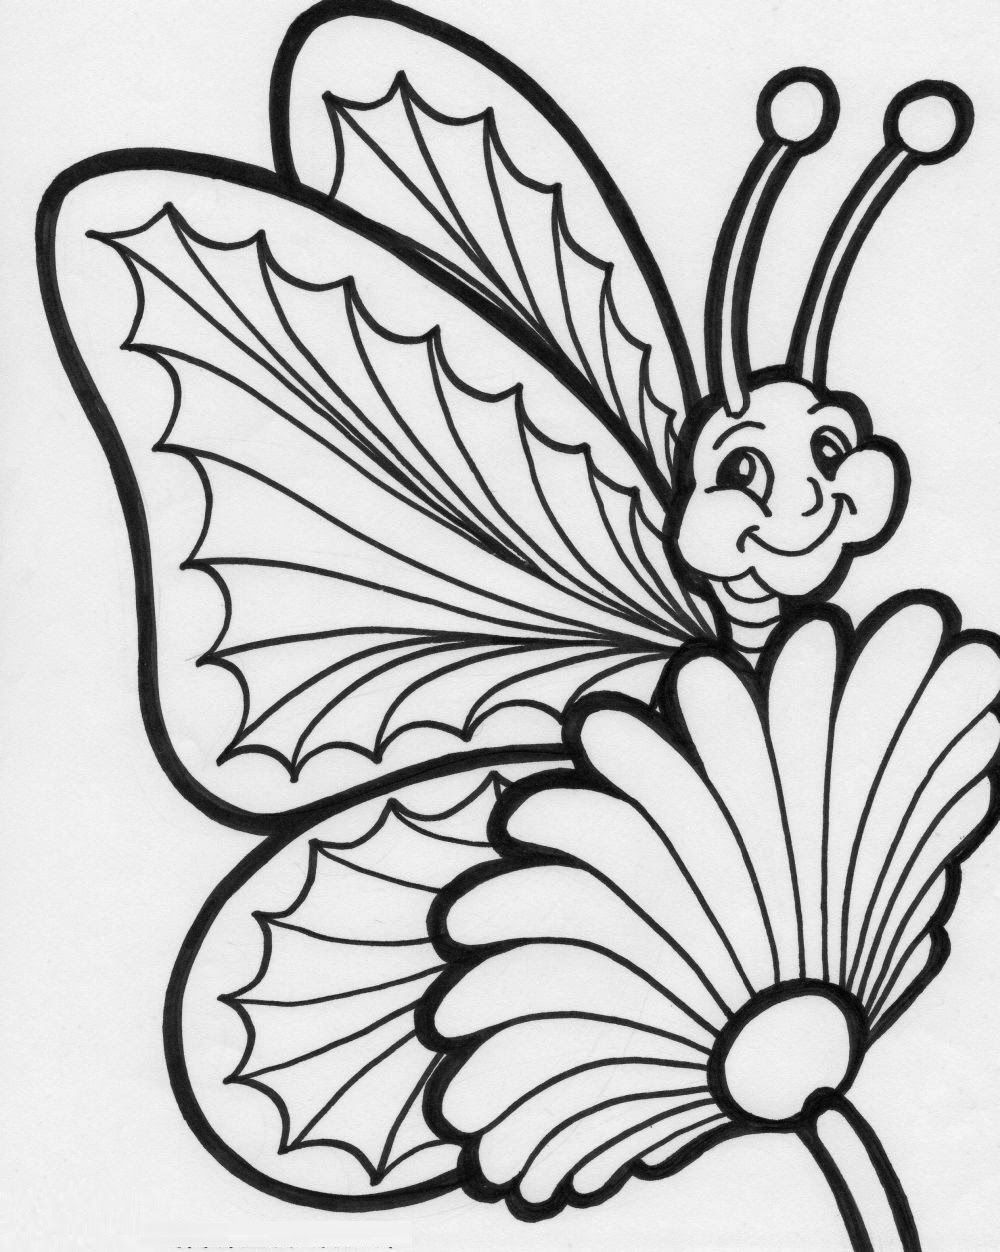 coloring pages for adults hd beautiful colour butterflies drawing hd wallpaper adults coloring for pages hd